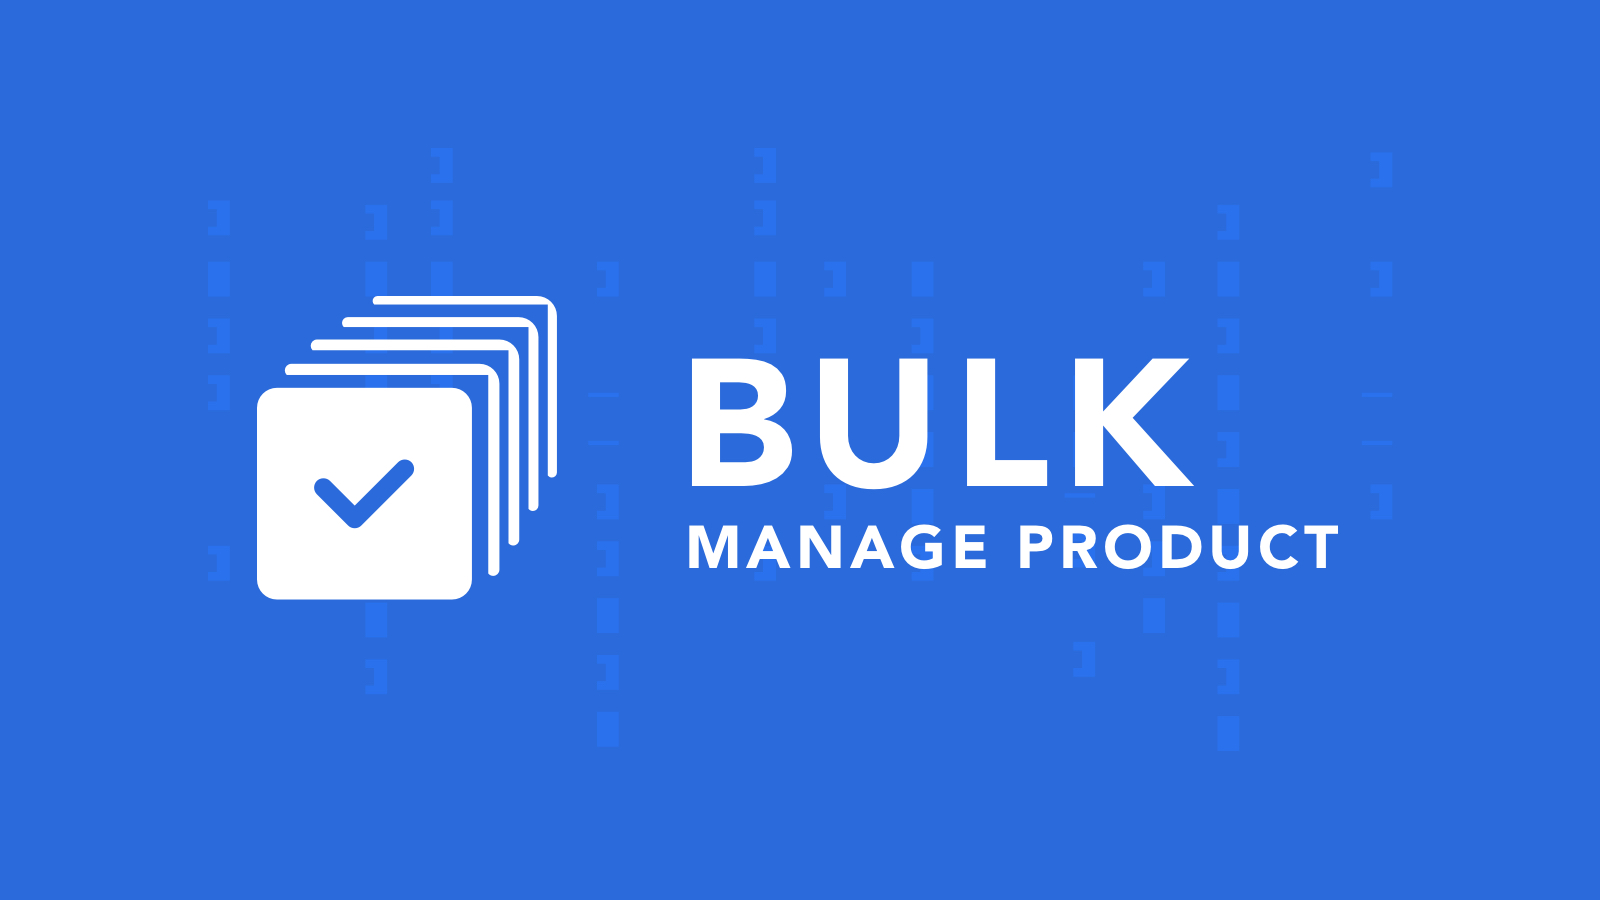 bulkimage